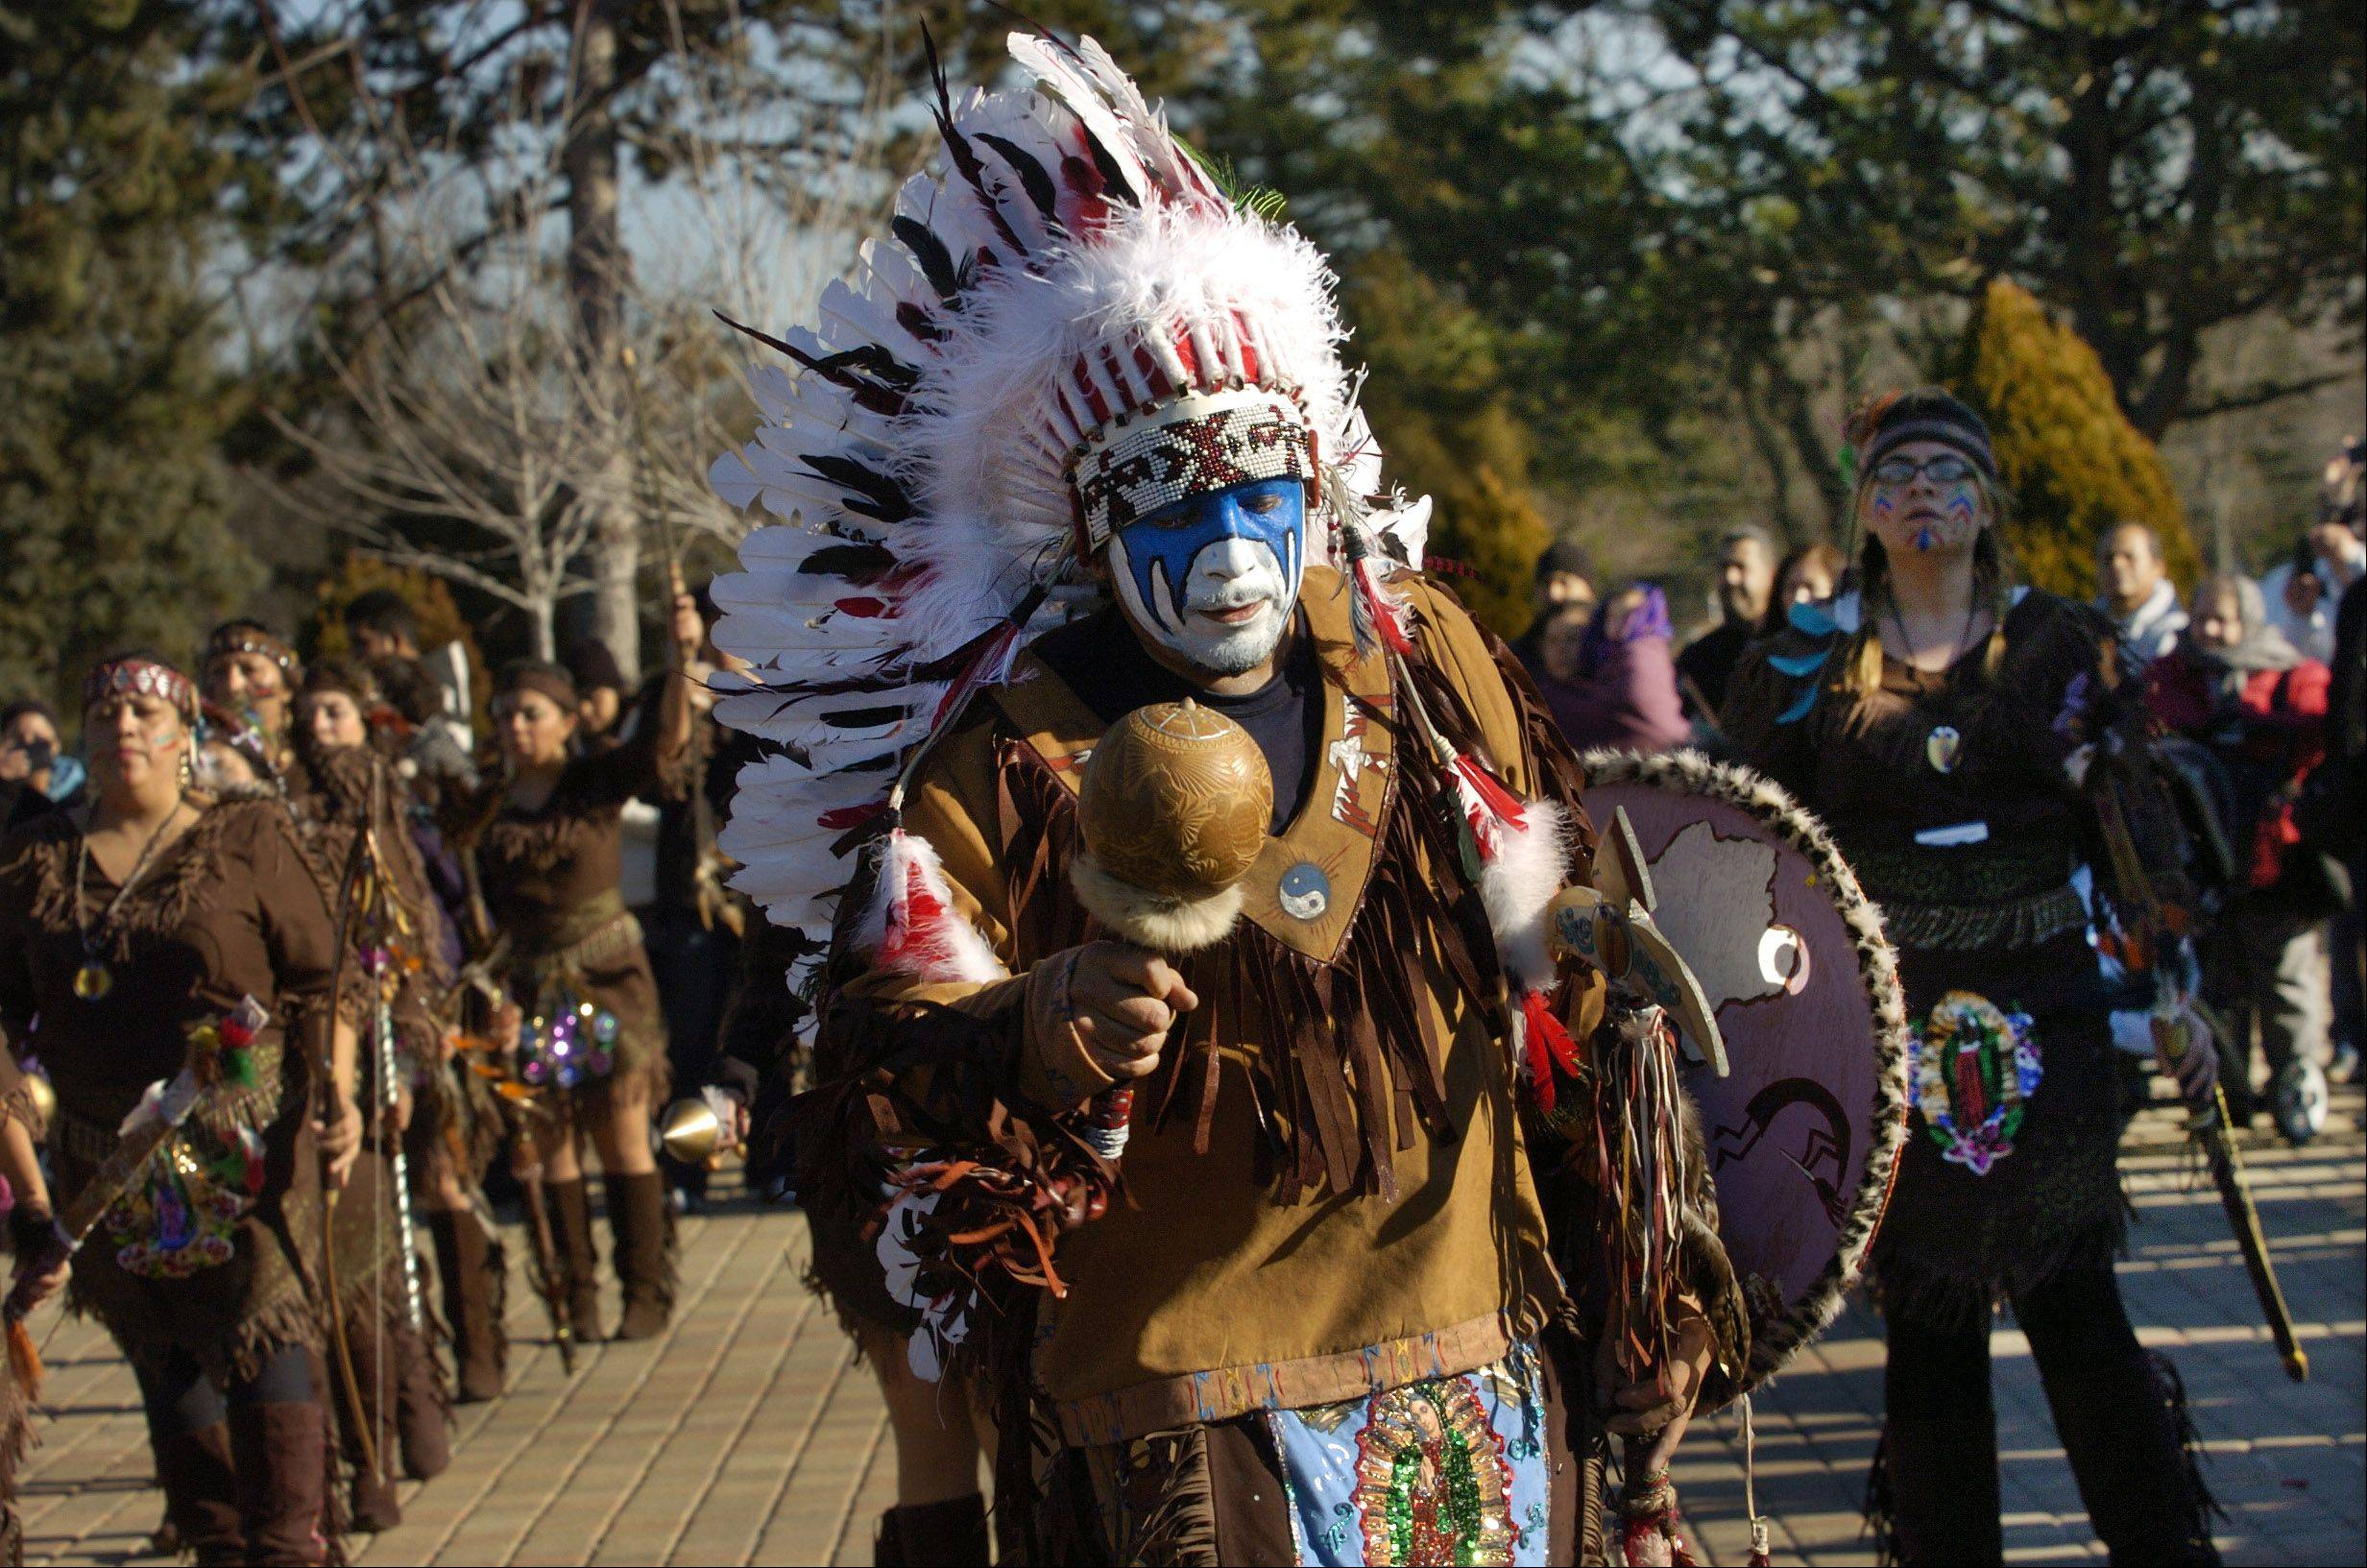 Victor Rodriguez and Danza Devocion Guadalupana perform an indigenous Mexican Indian ritual dance in front of the Our Lady of Guadalupe shrine in Des Plaines.